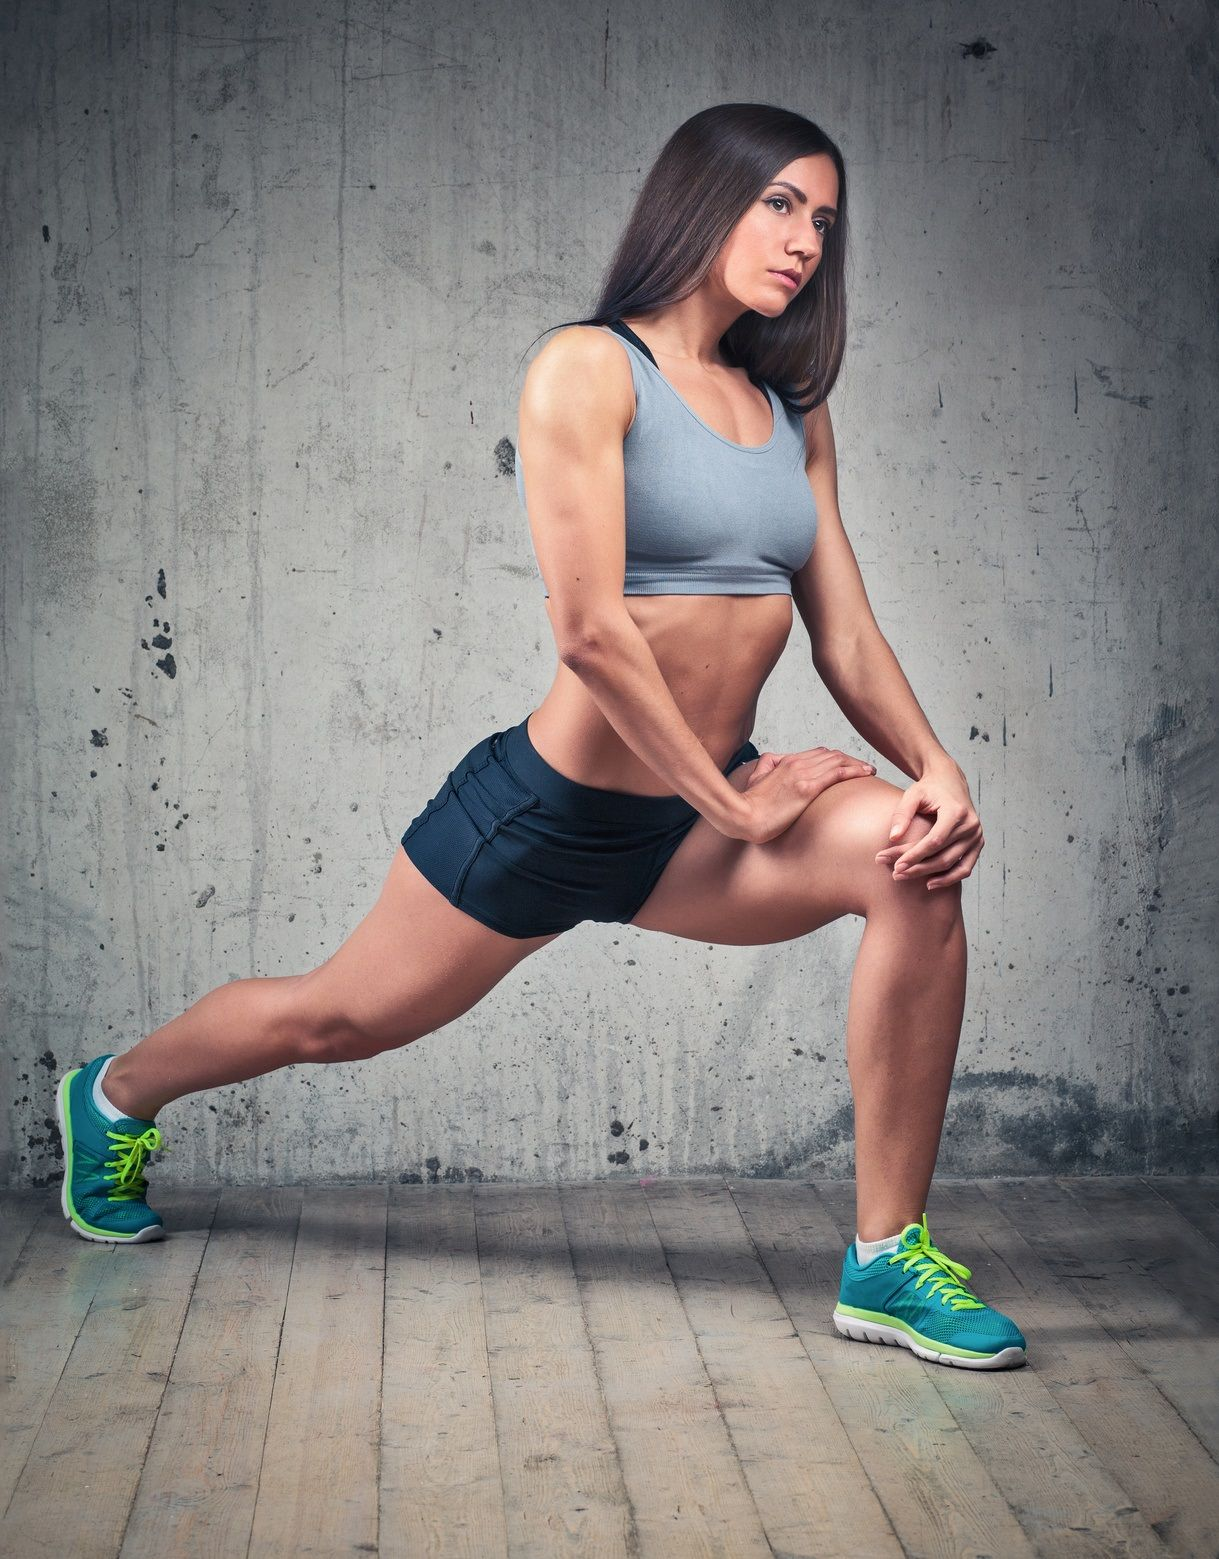 Sporty woman with muscular body doing fitness lunge on concrete wall background